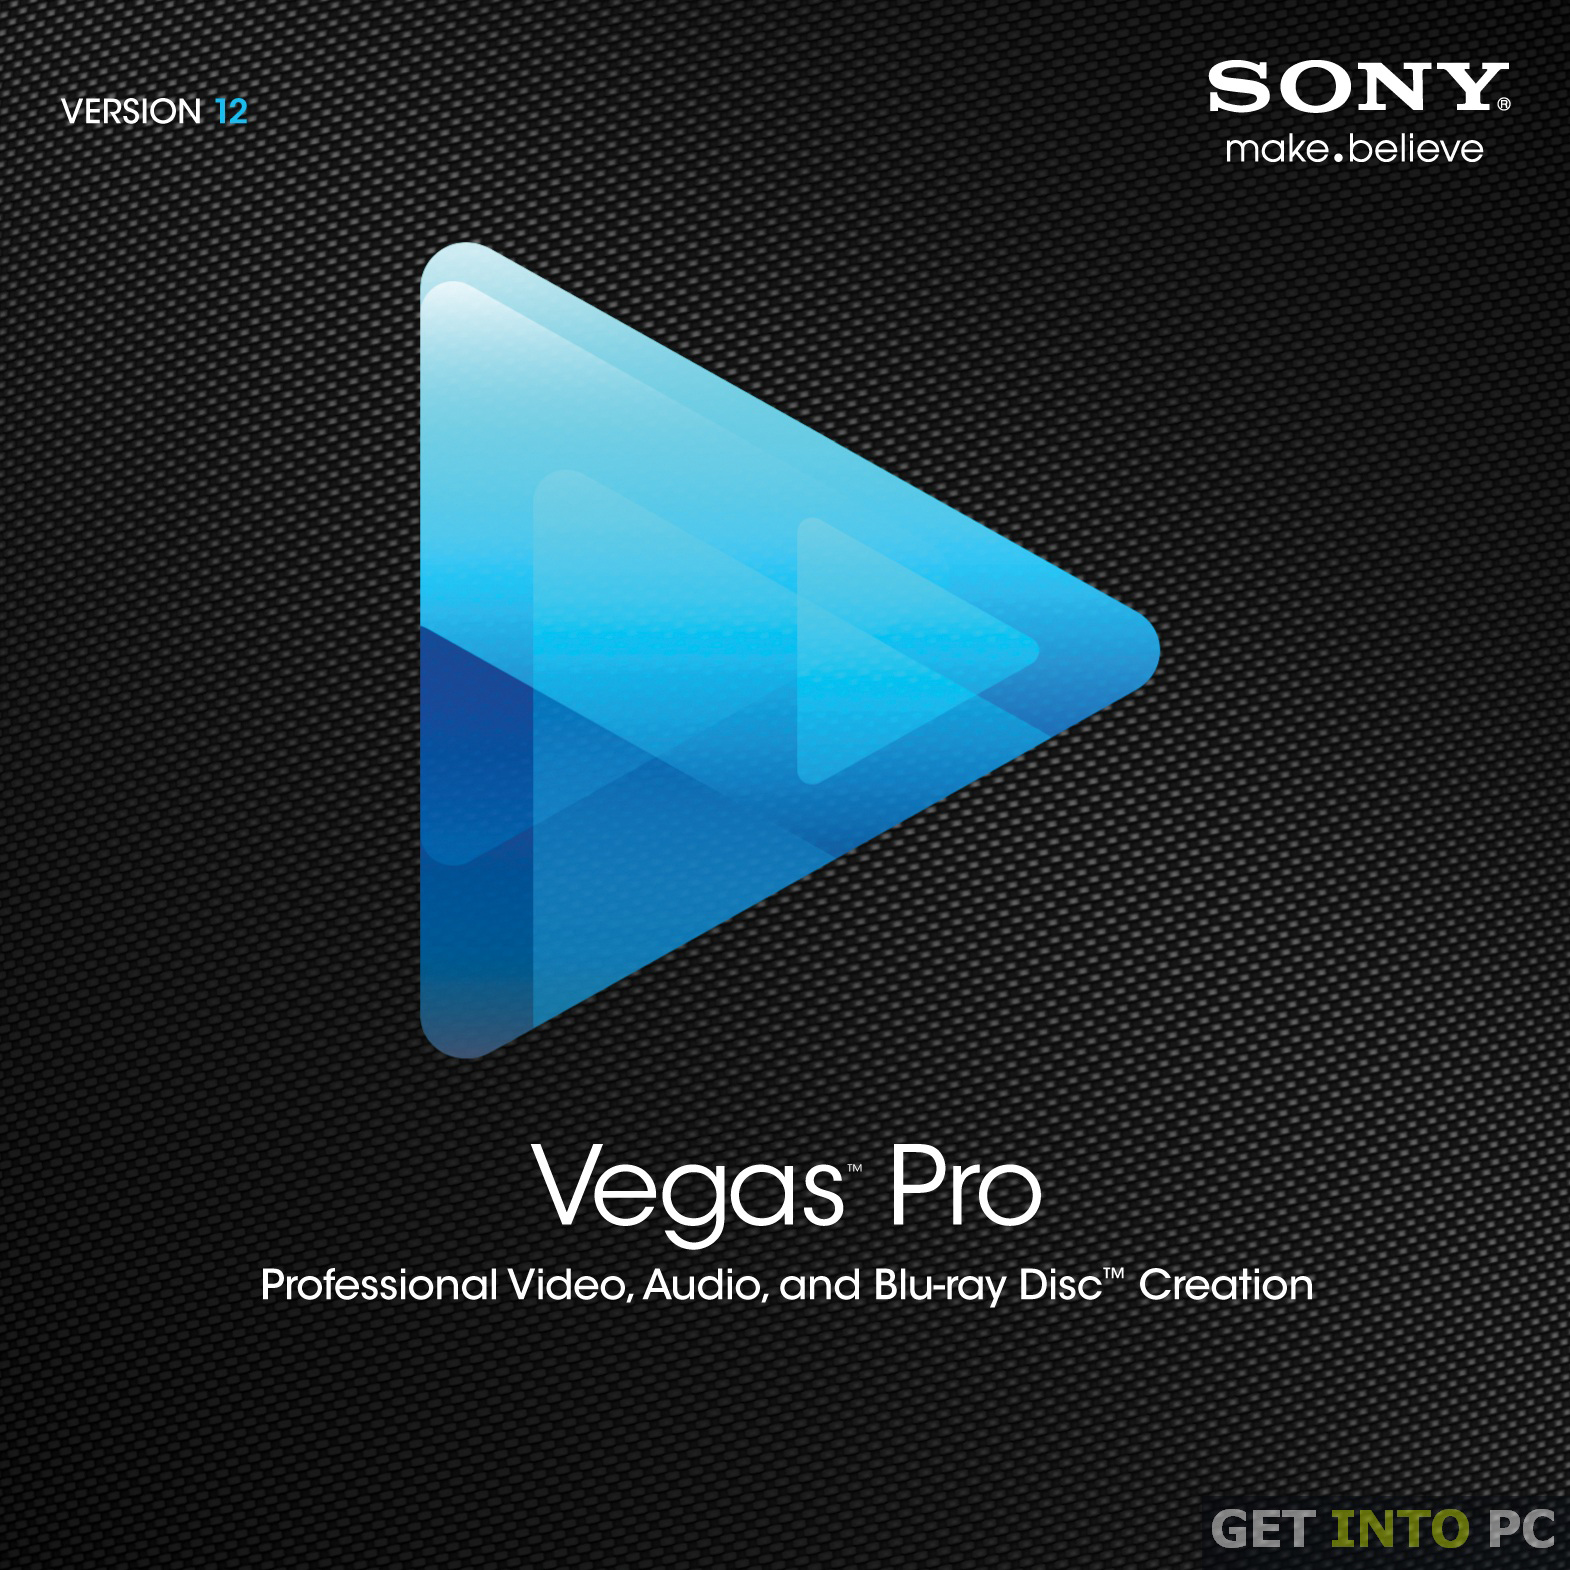 Sony Vegas Pro 12 Free Download